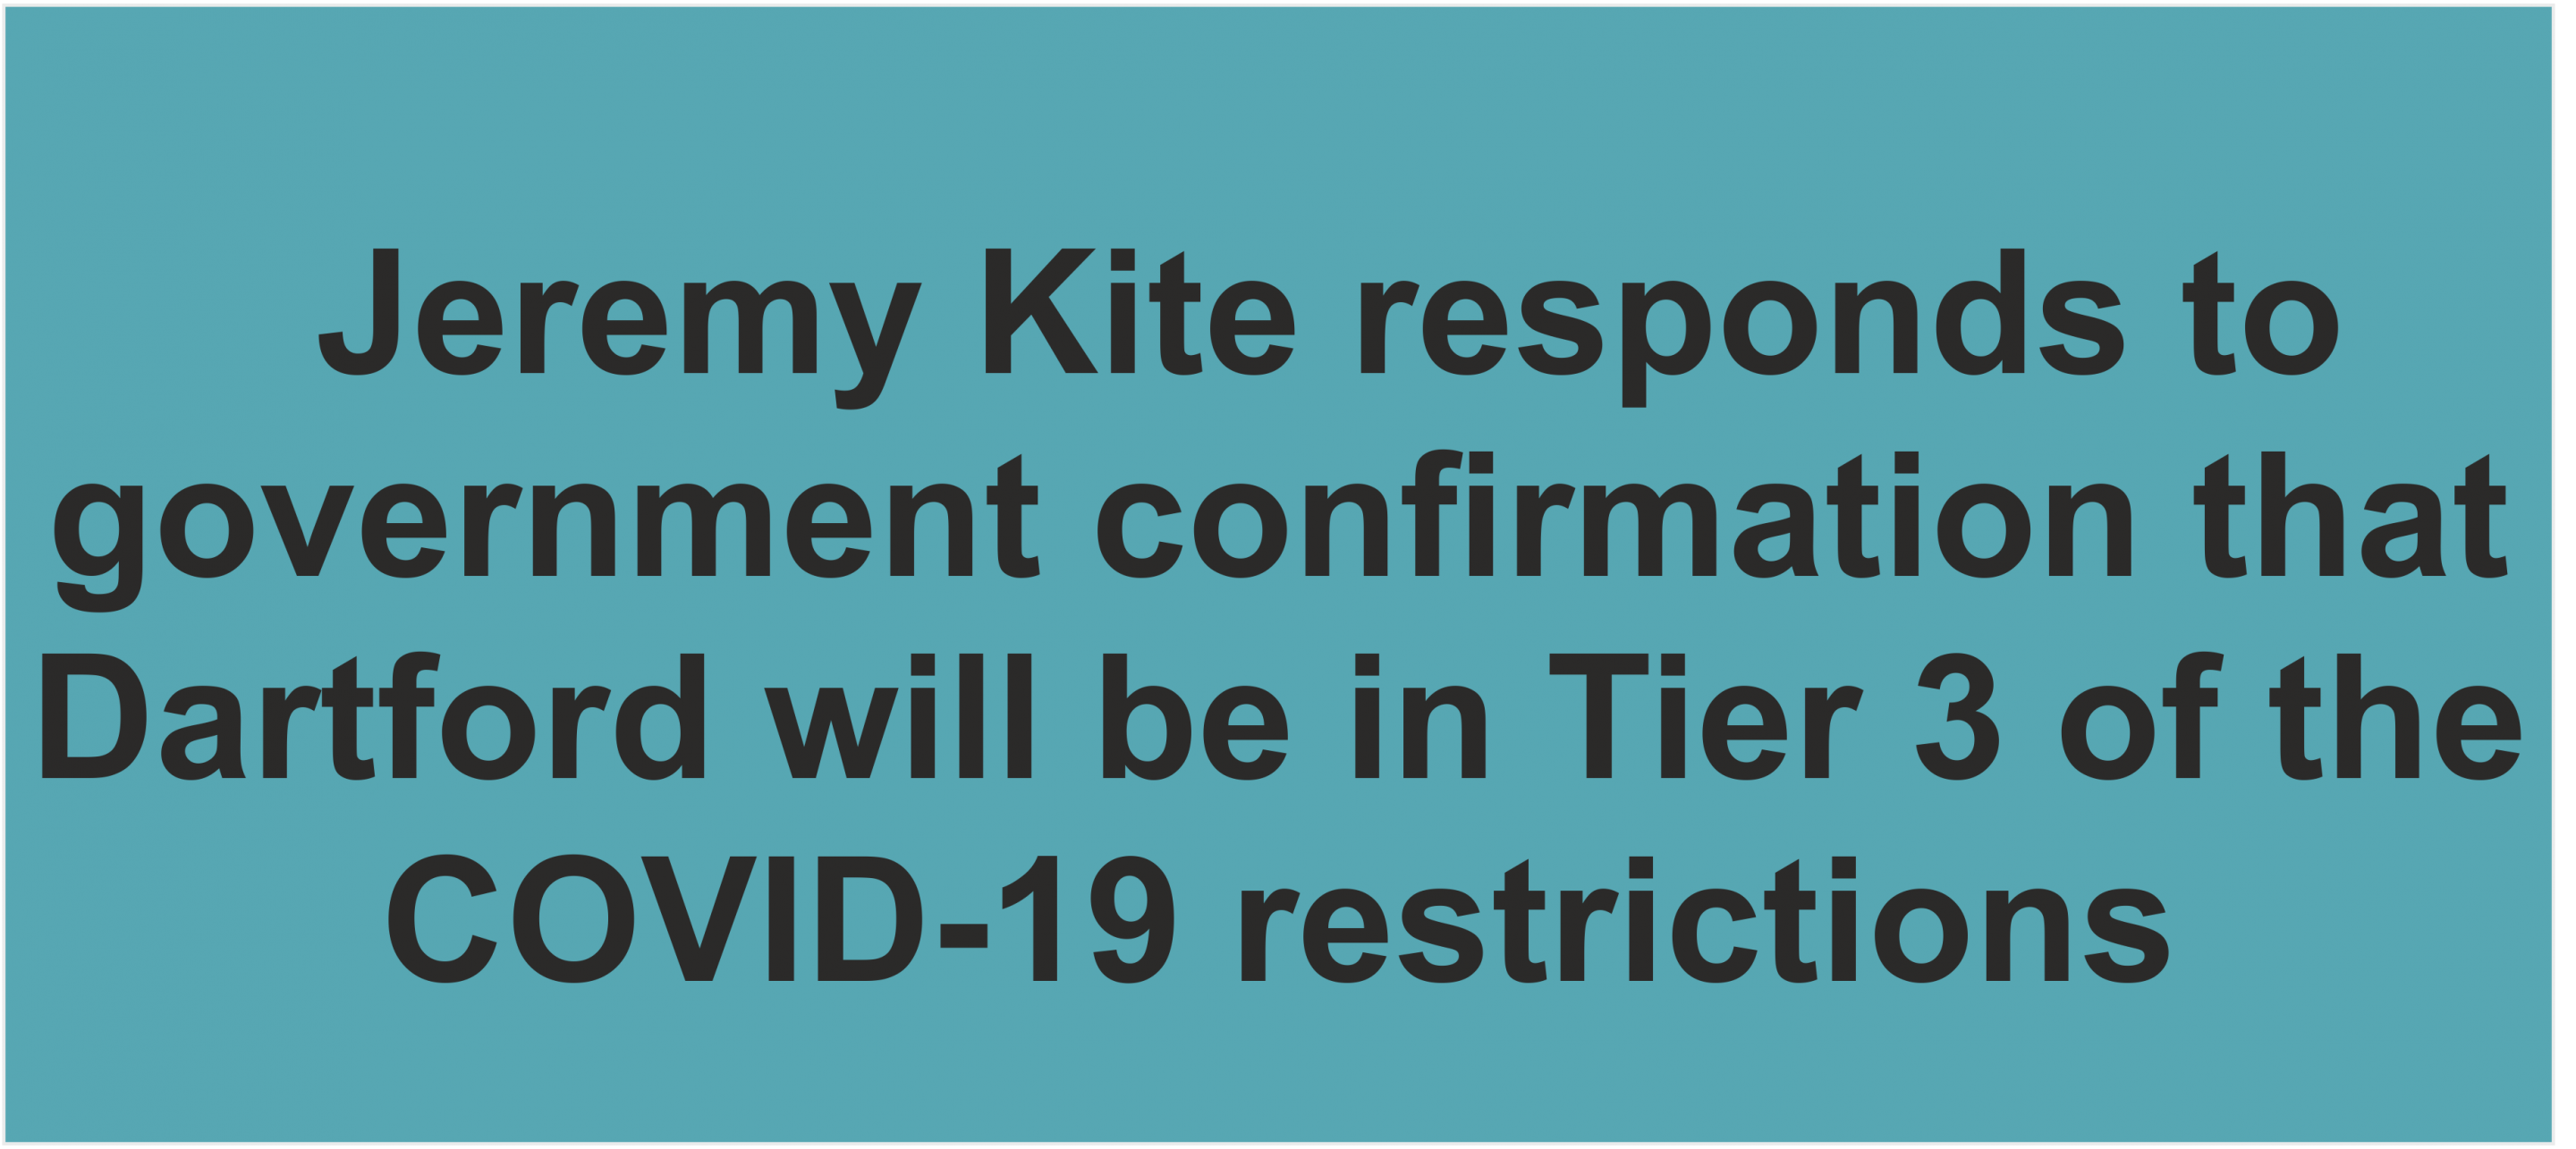 Dartford to be in Tier 3 restrictions due to Covid